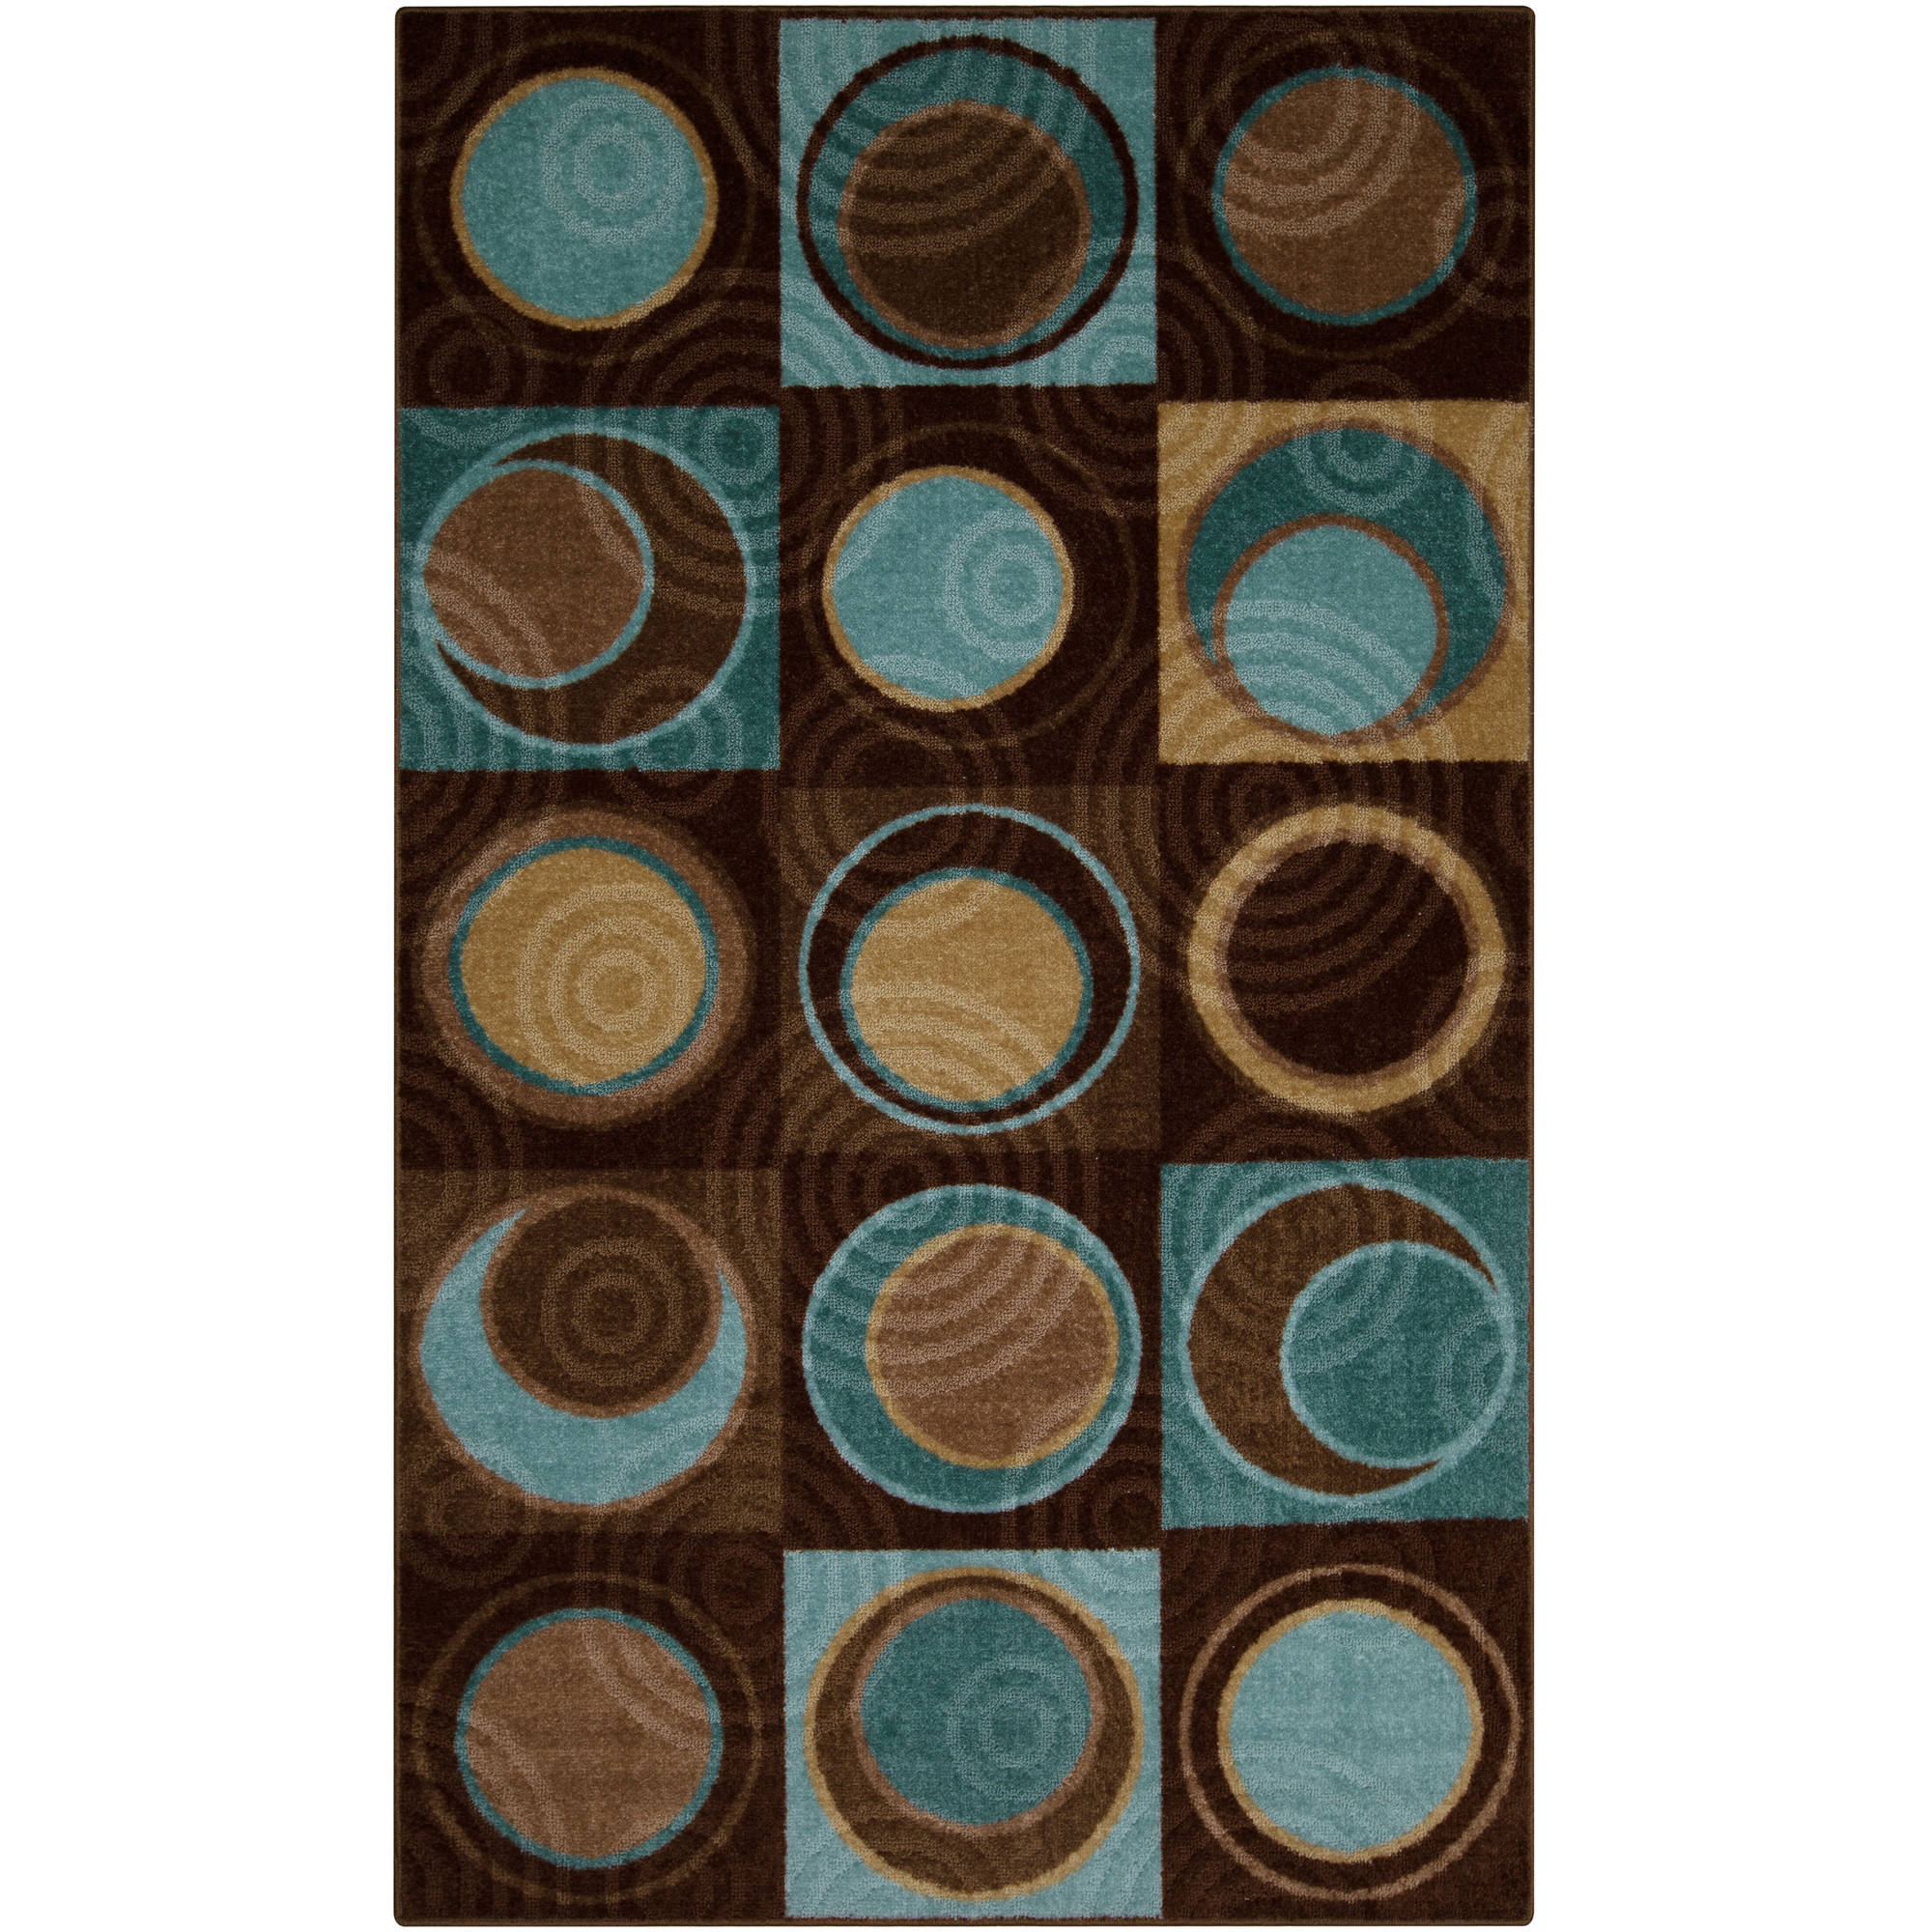 Better Homes and Gardens Circle Block Area Rugs or Runner